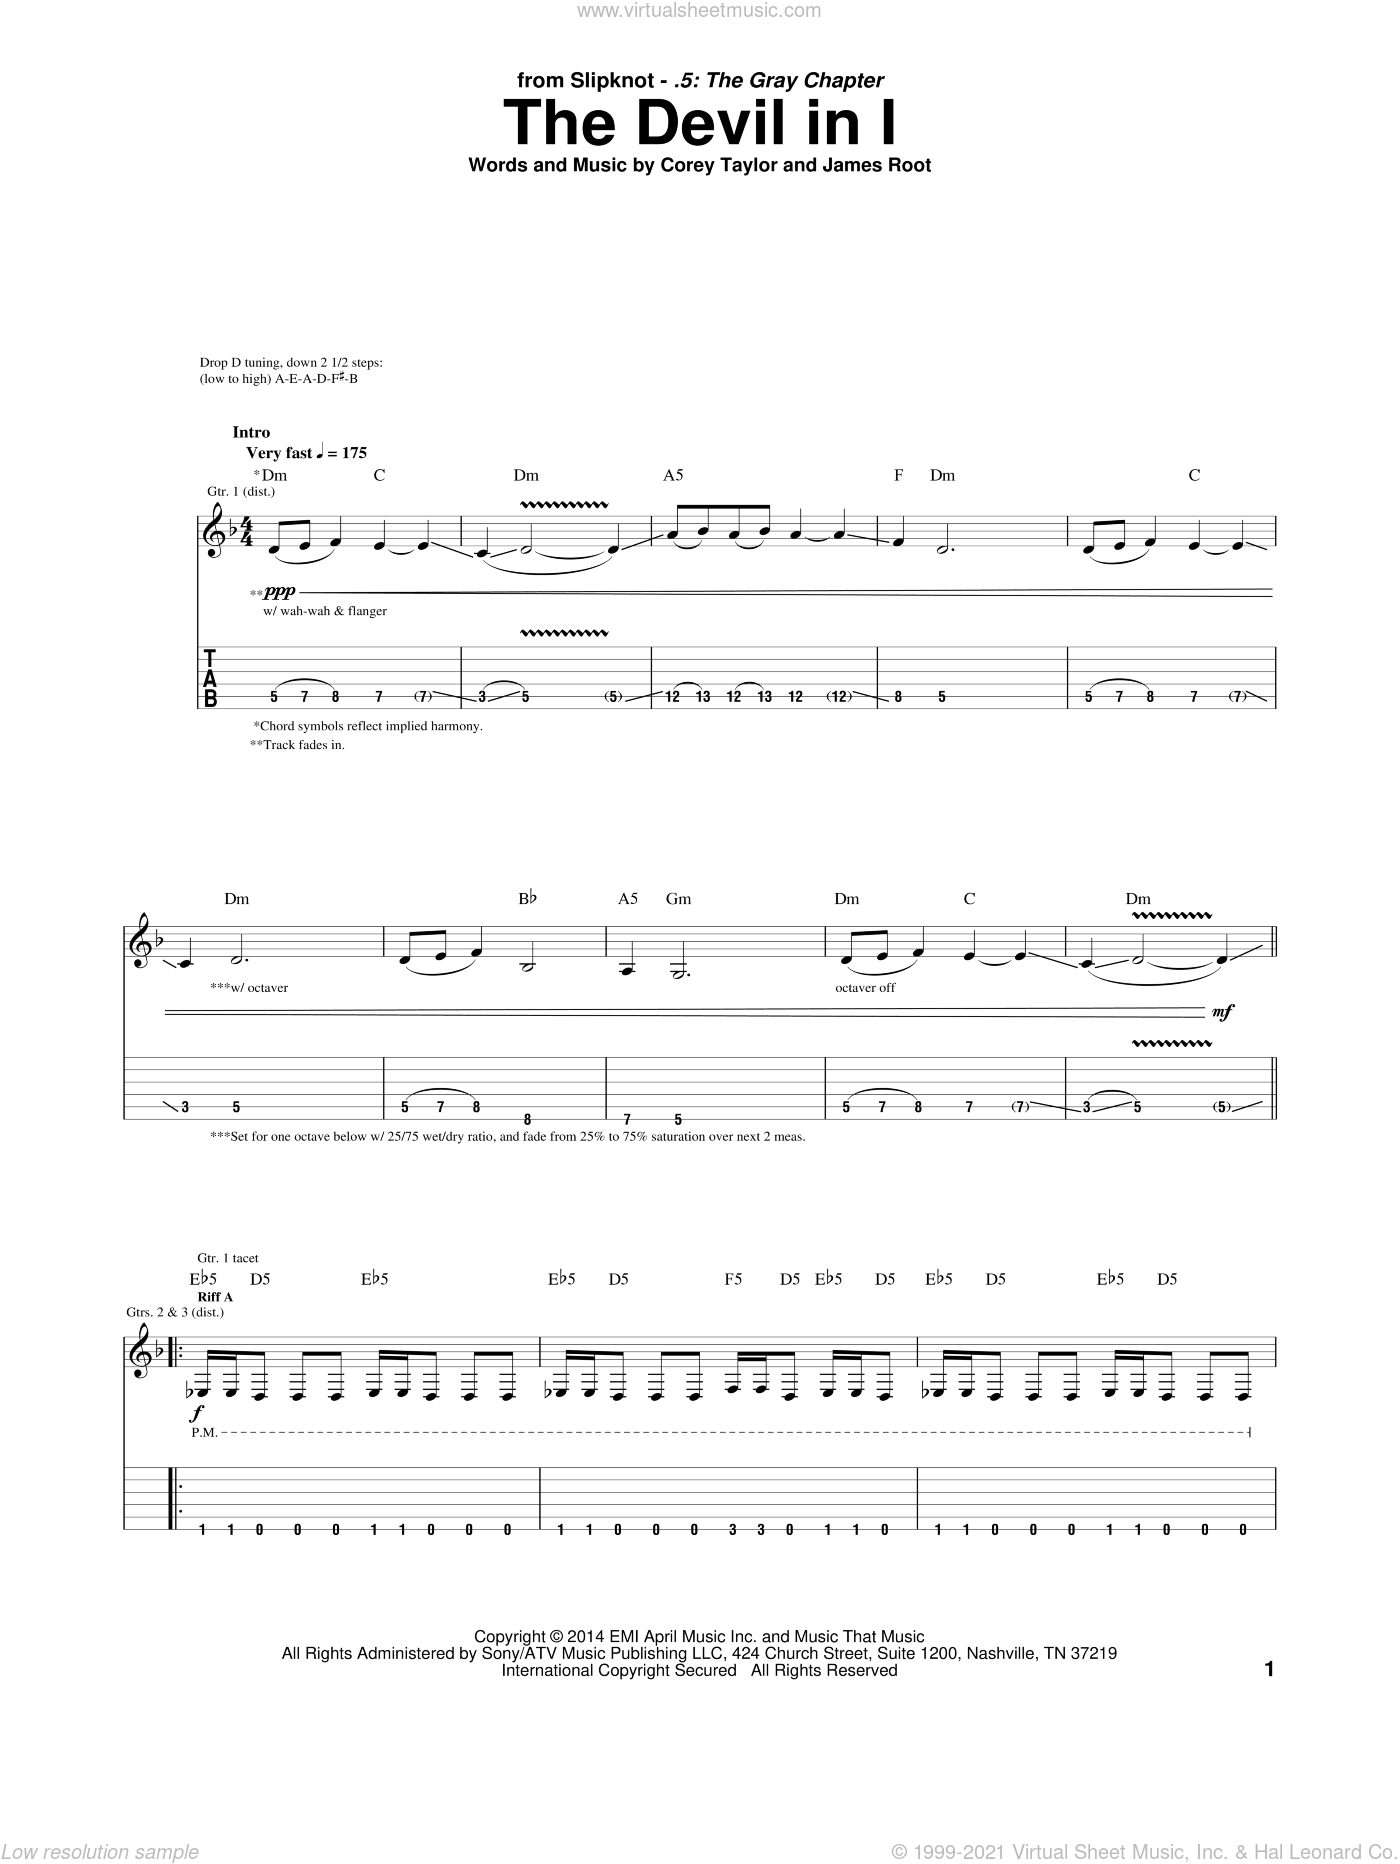 The Devil In I sheet music for guitar (tablature) by Slipknot, Corey Taylor and James Root, intermediate skill level